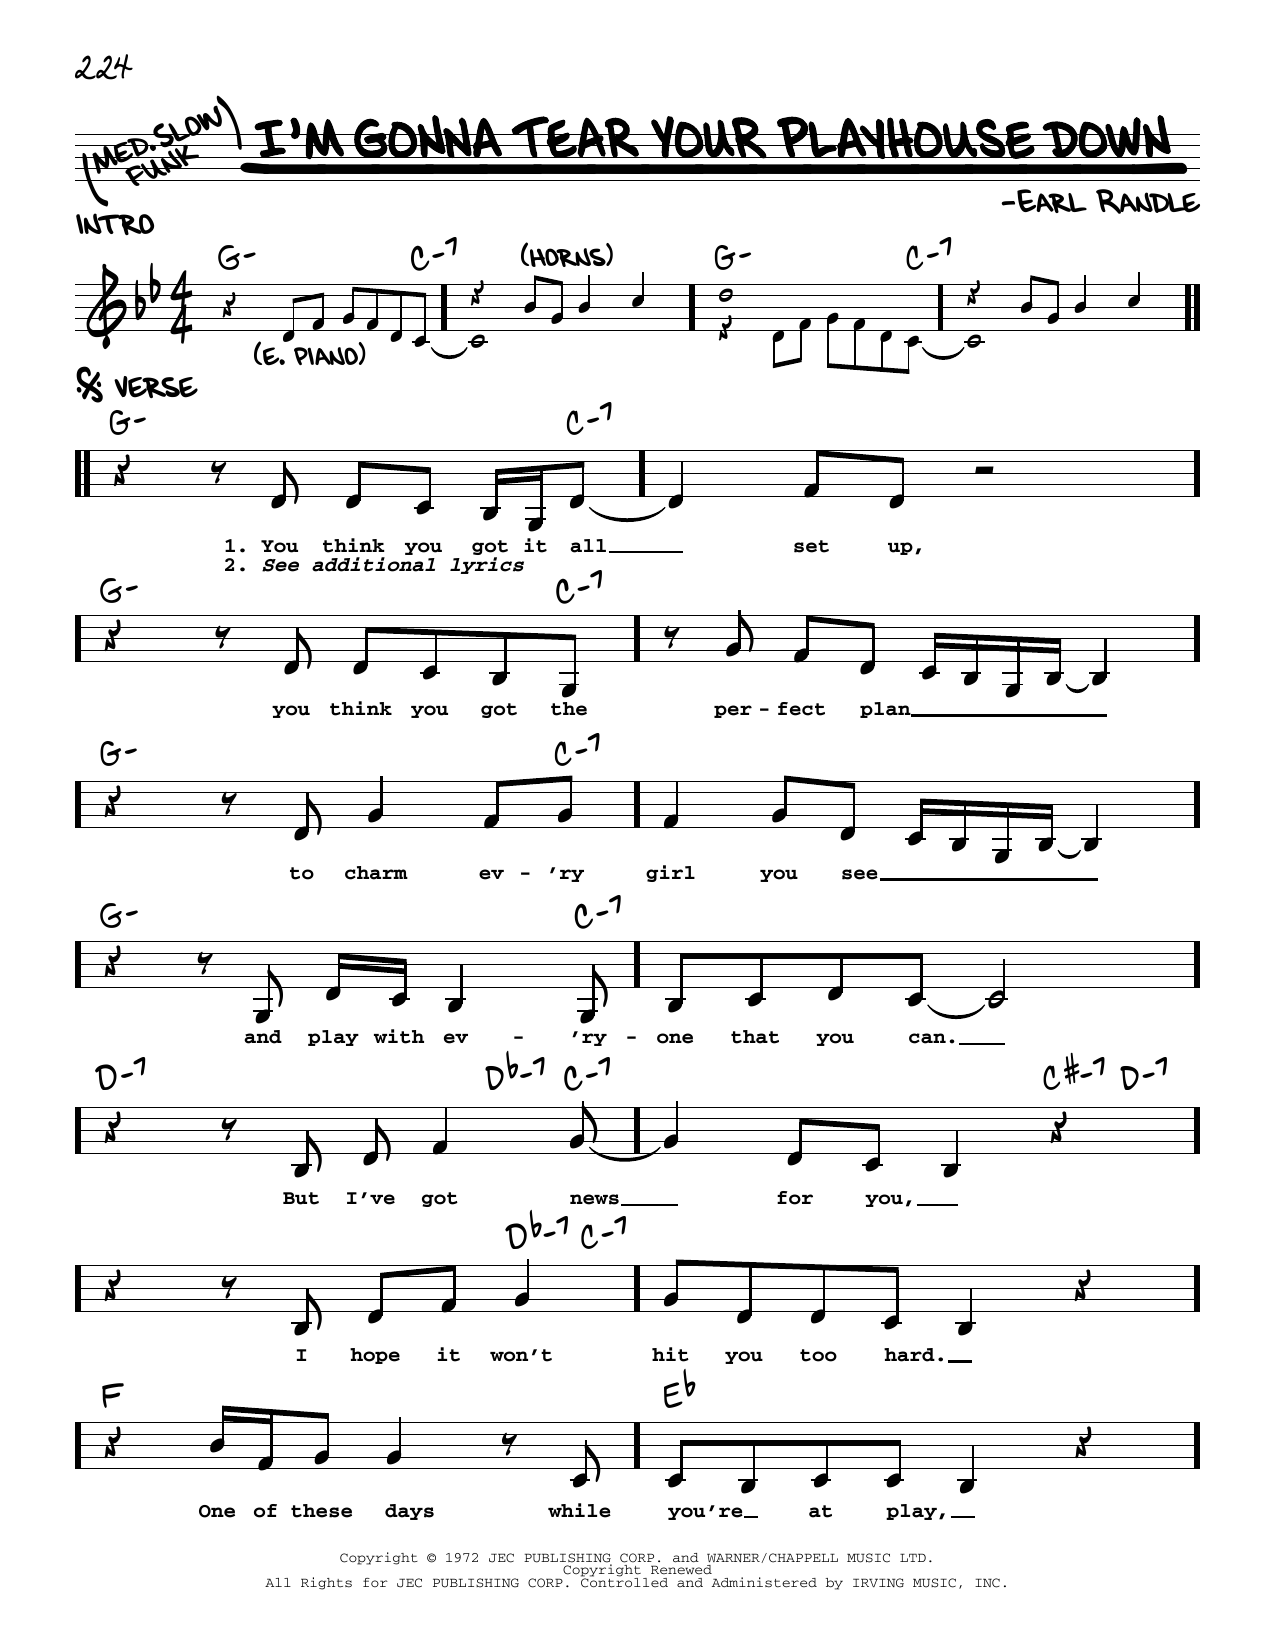 Earl Randle I'm Gonna Tear Your Playhouse Down sheet music notes printable PDF score